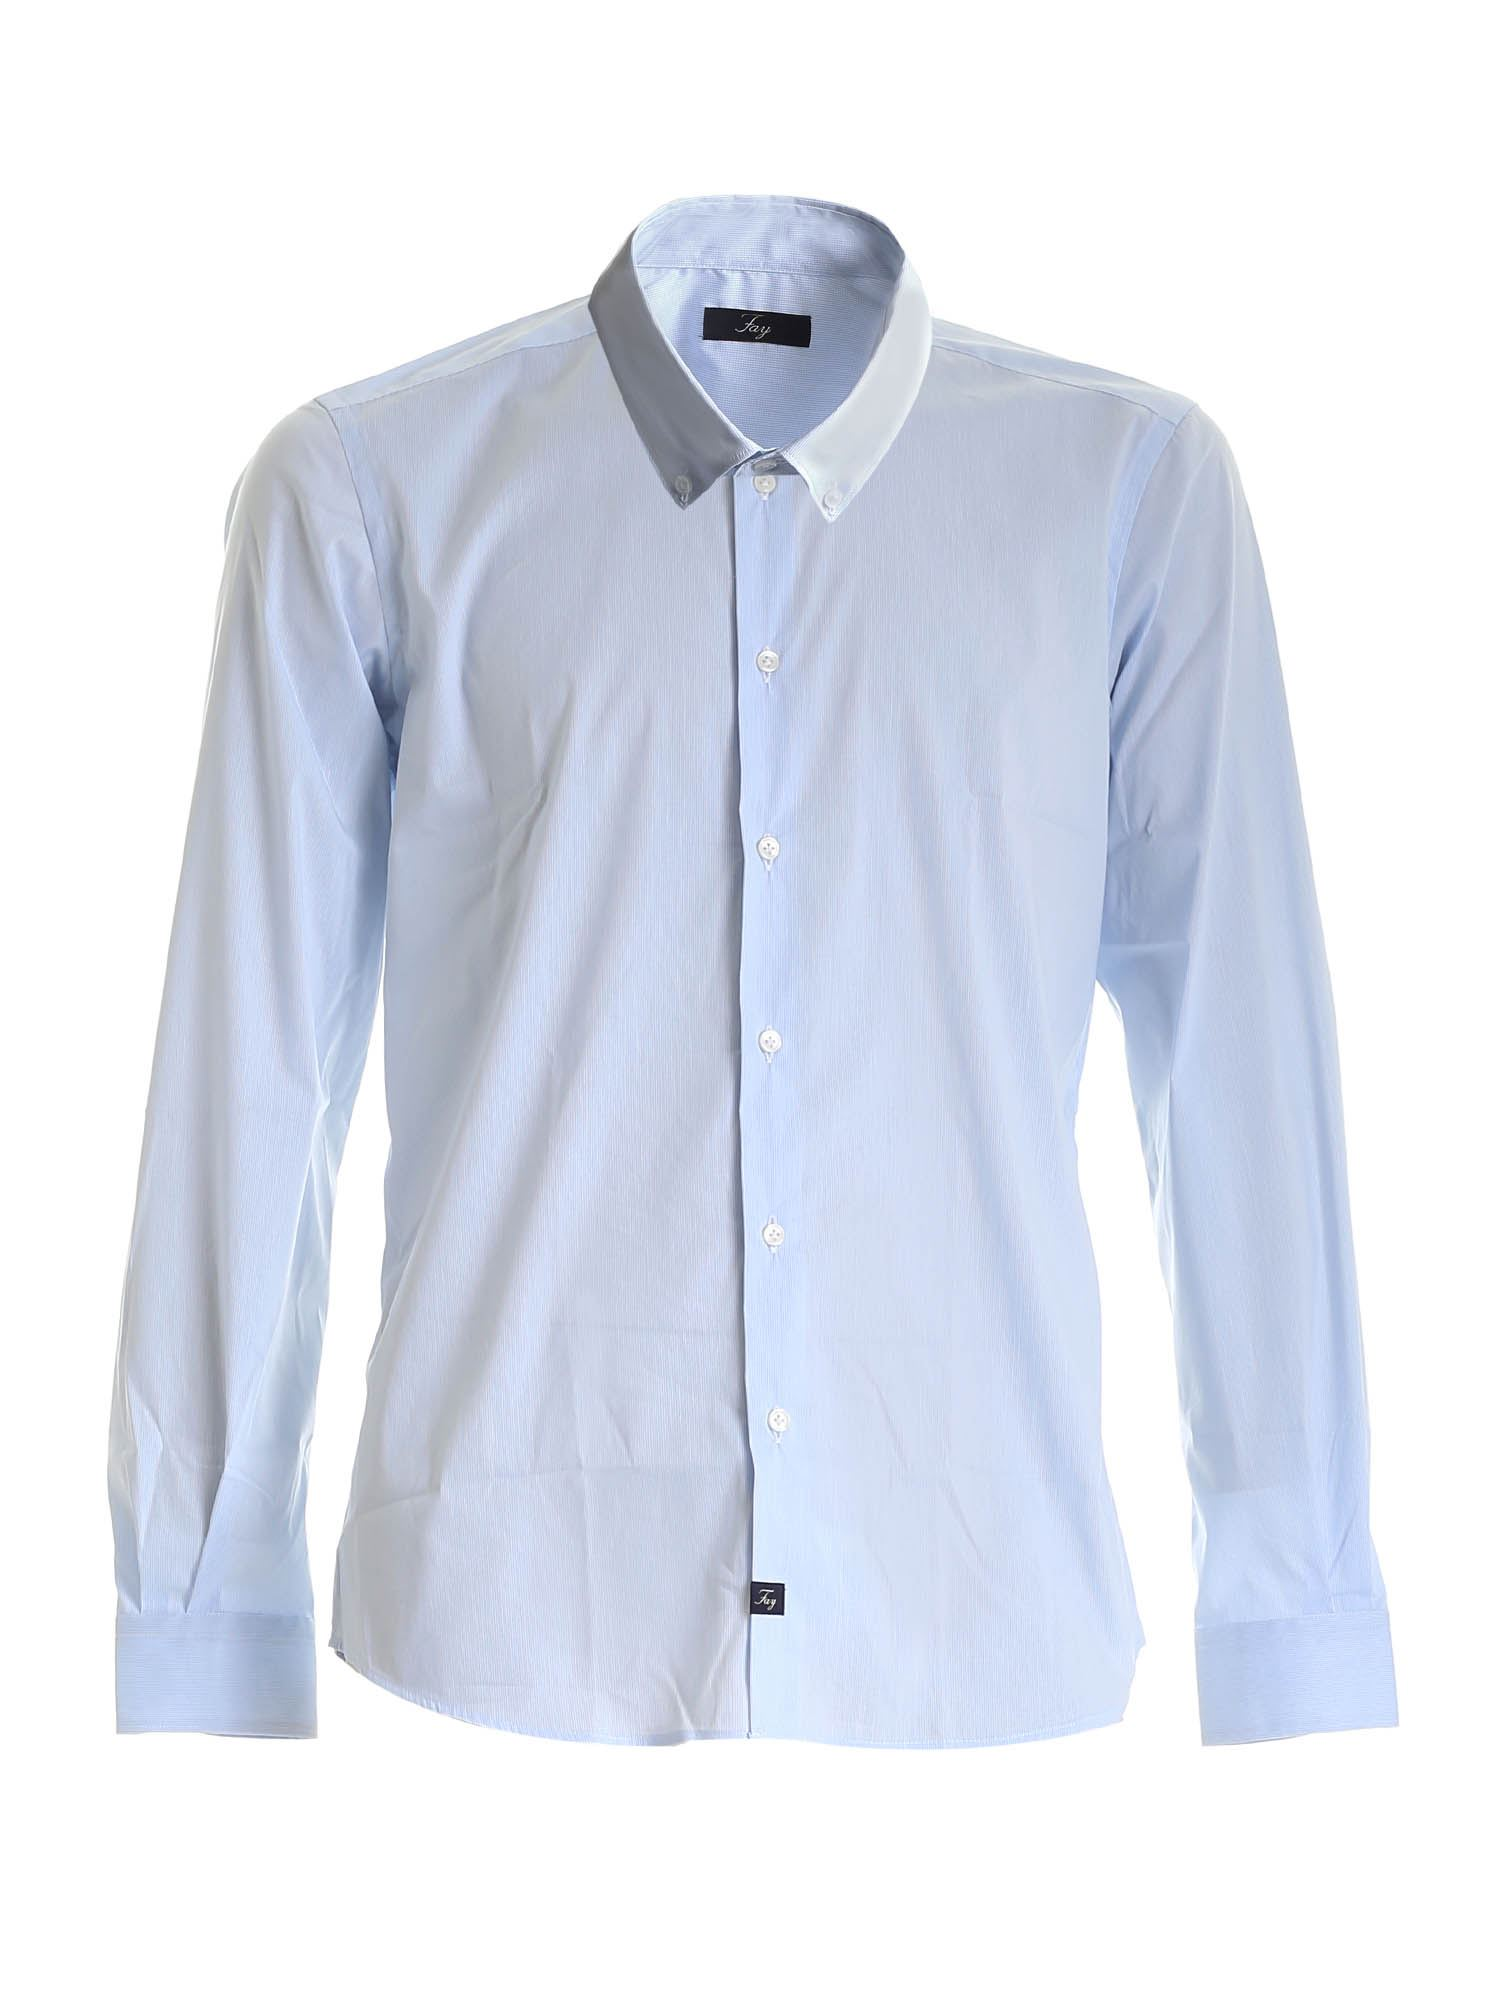 CHECKED BUTTON DOWN SHIRT WHITE AND LIGHT BLUE FAY | 6 | NCMA141258SSFQ017D